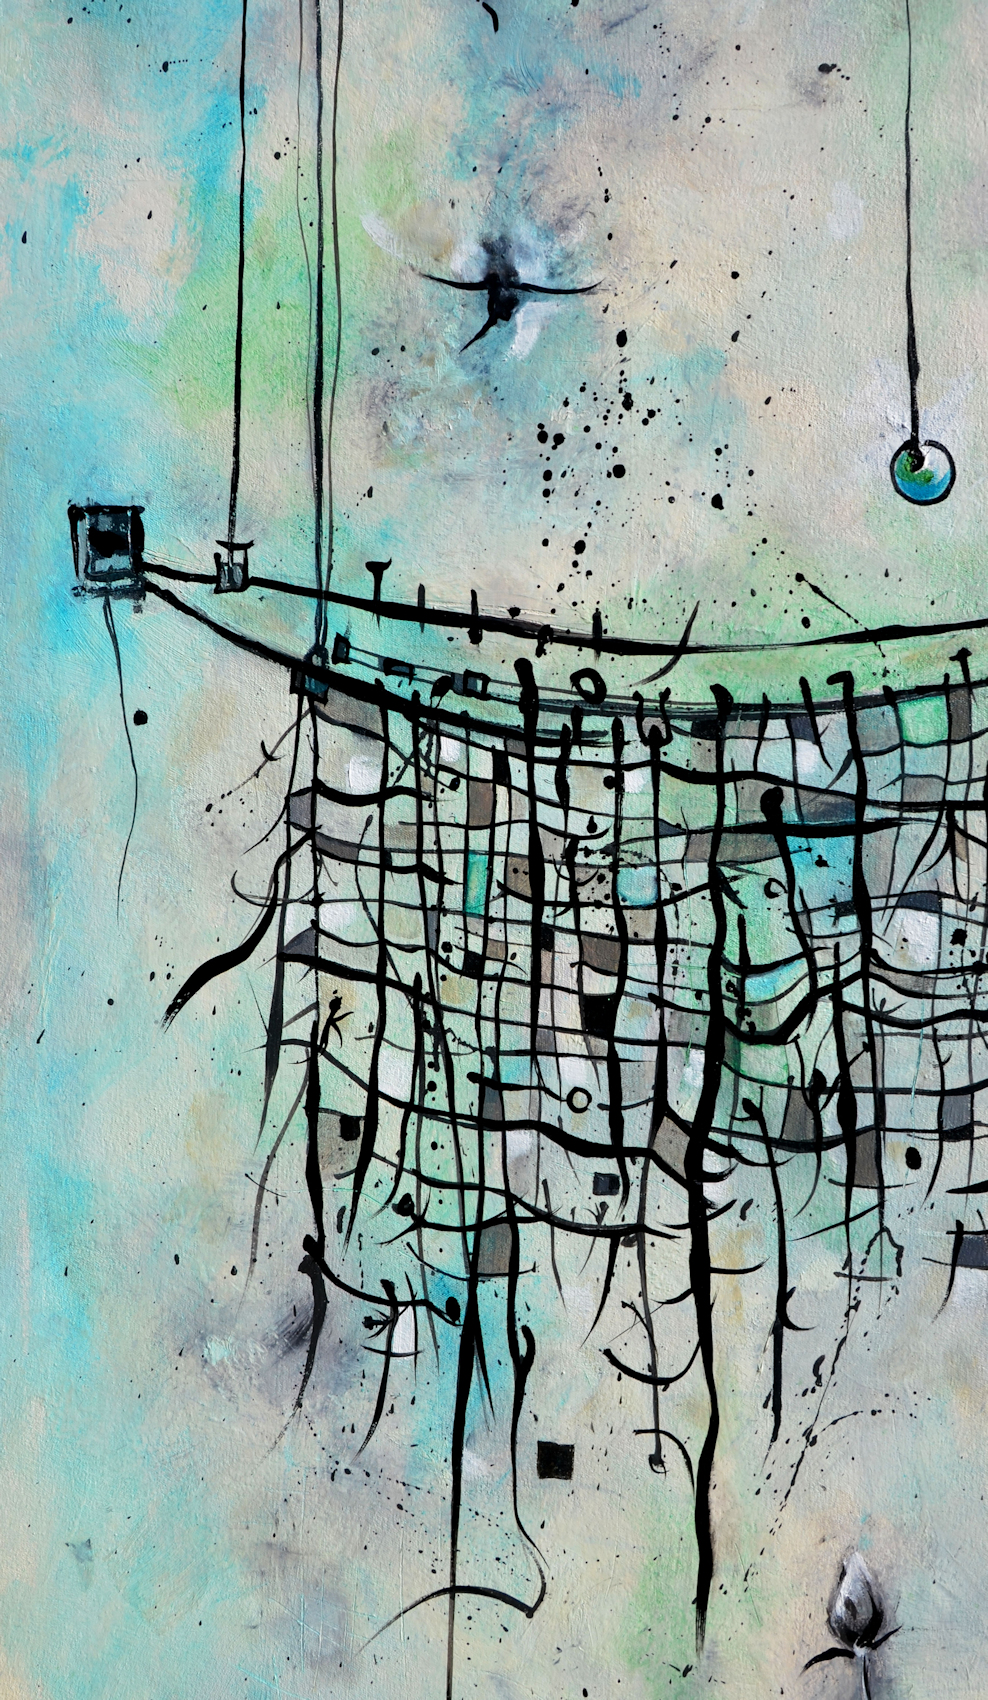 Aqua Mesh  detail . A series of paintings that center around the communication and relationship theme are the Mesh series of abstract oil paintings. Evolving from a  fishers of men  theme, the net serves as a symbol for relationships and the way communication lines and networks connect or break in our society, representative of the bonds we all share.